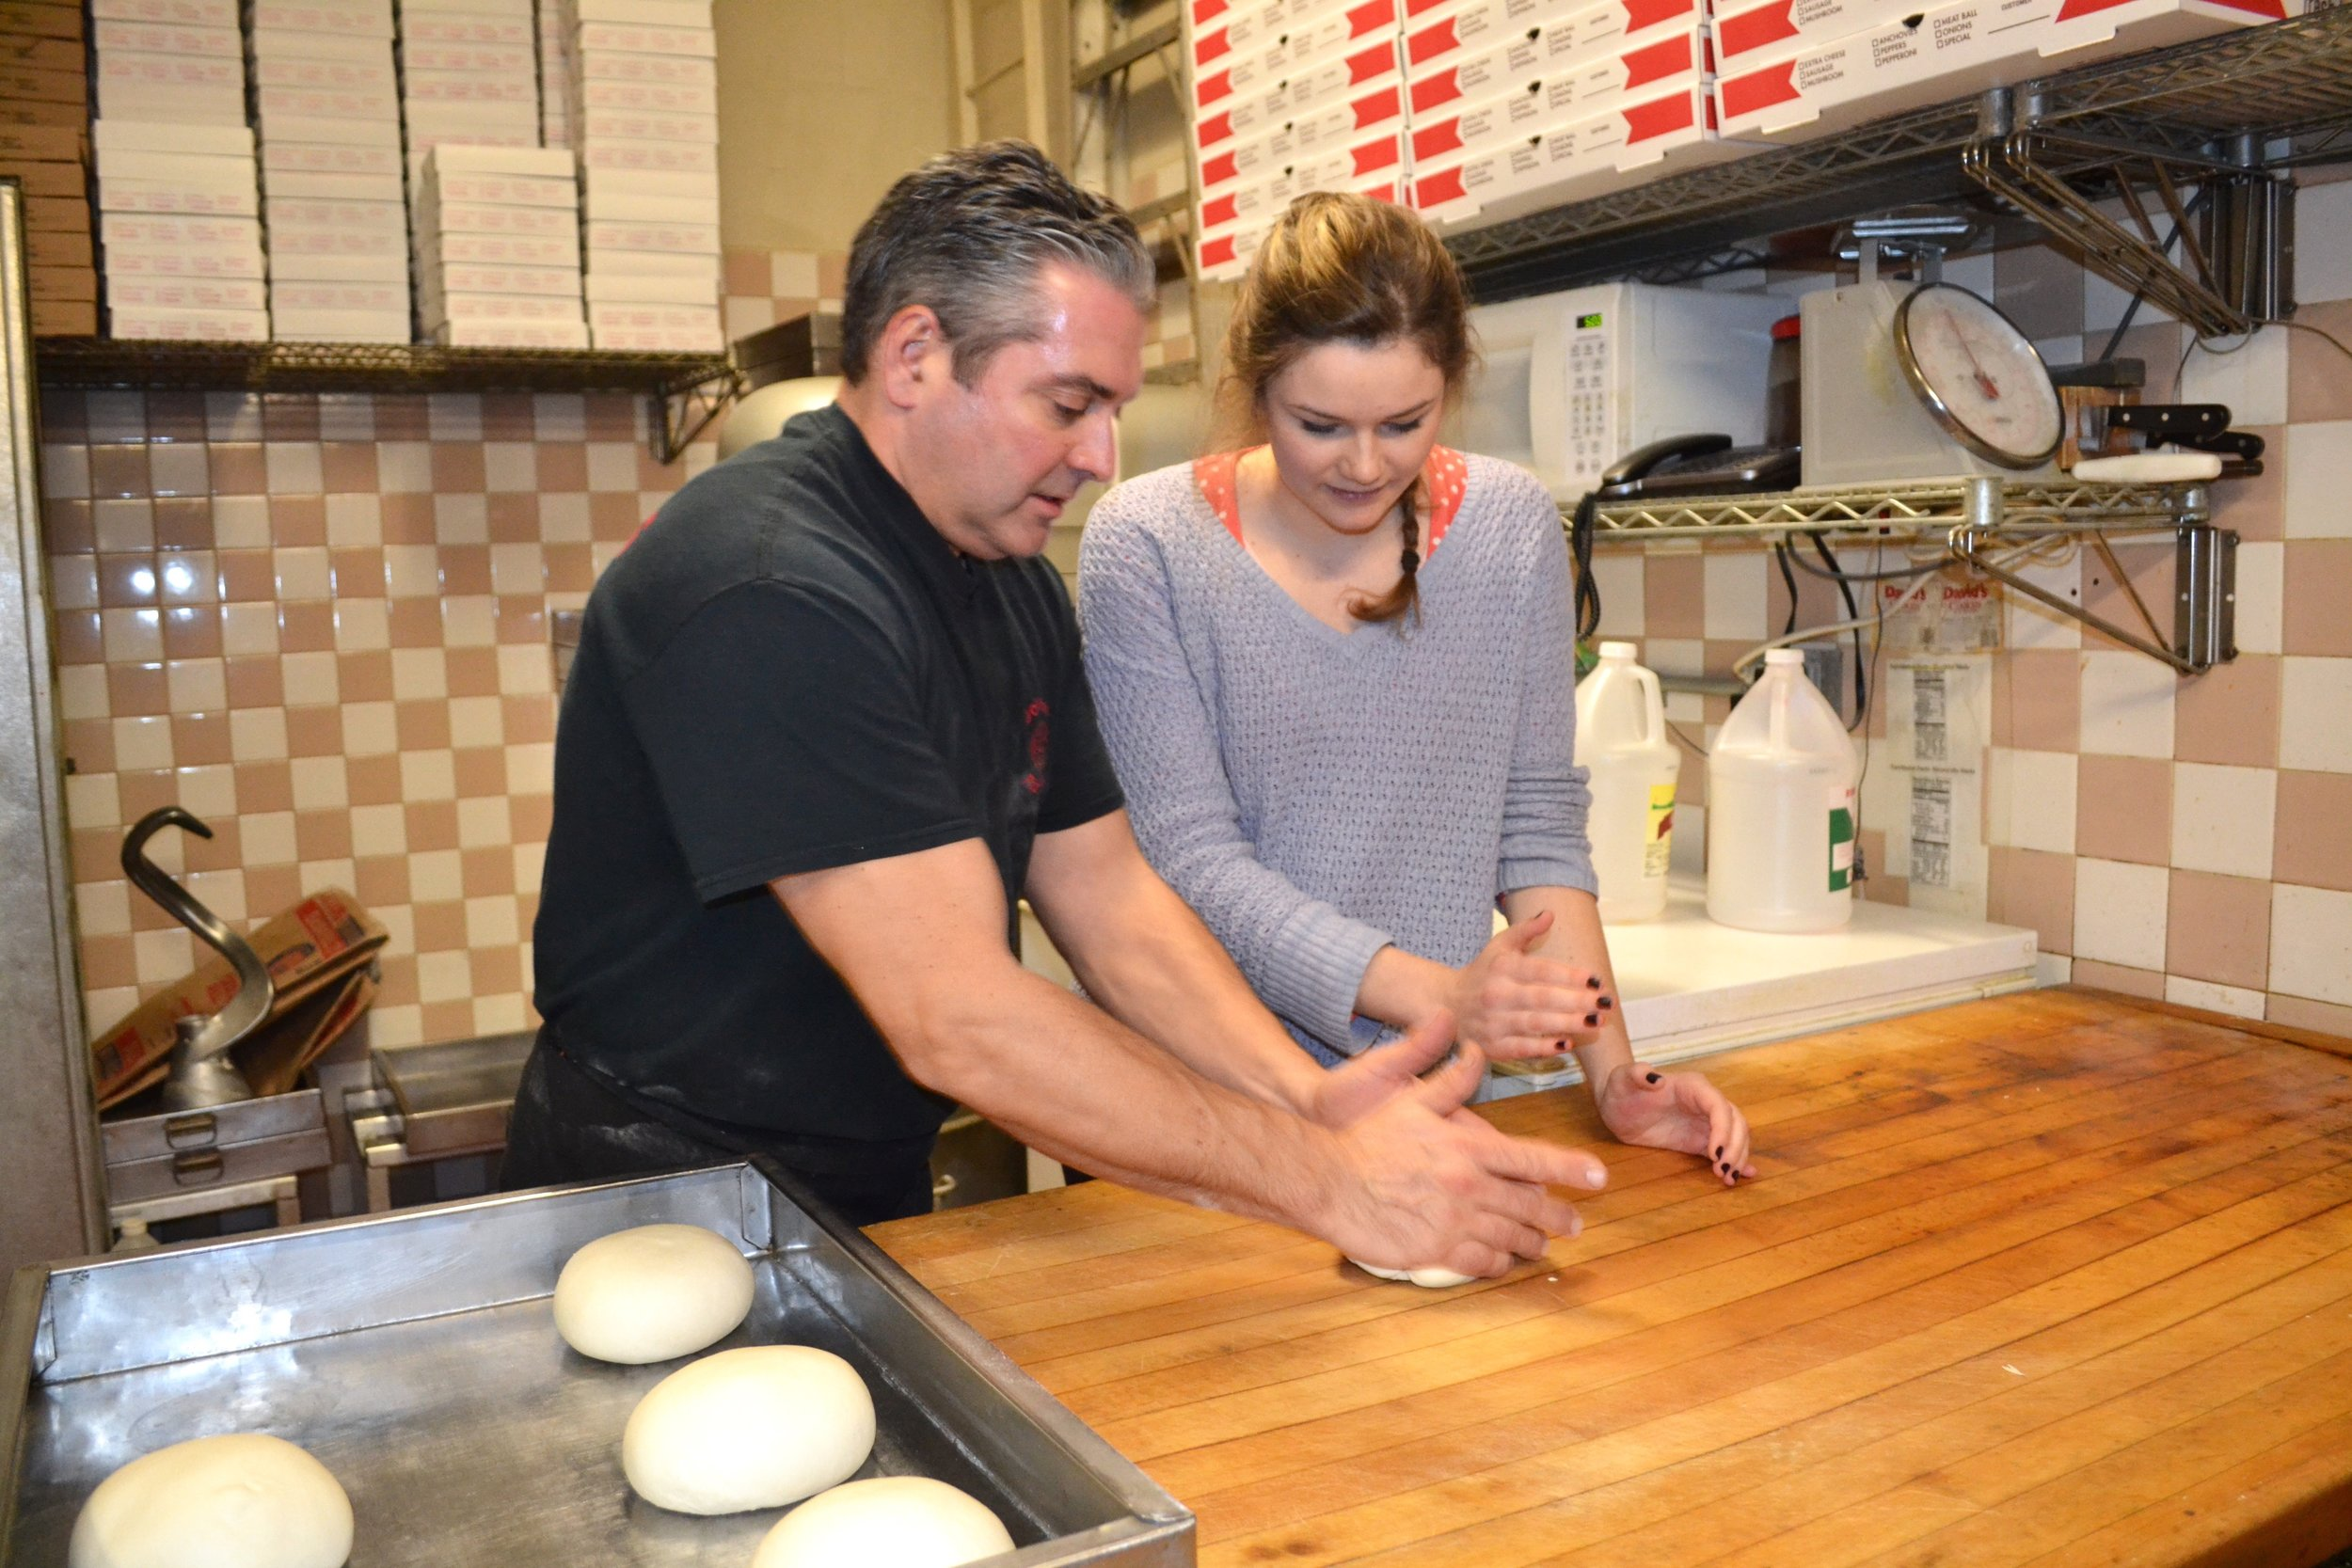 My friend, Lizzie, making pizza with Antonio in Brooklyn